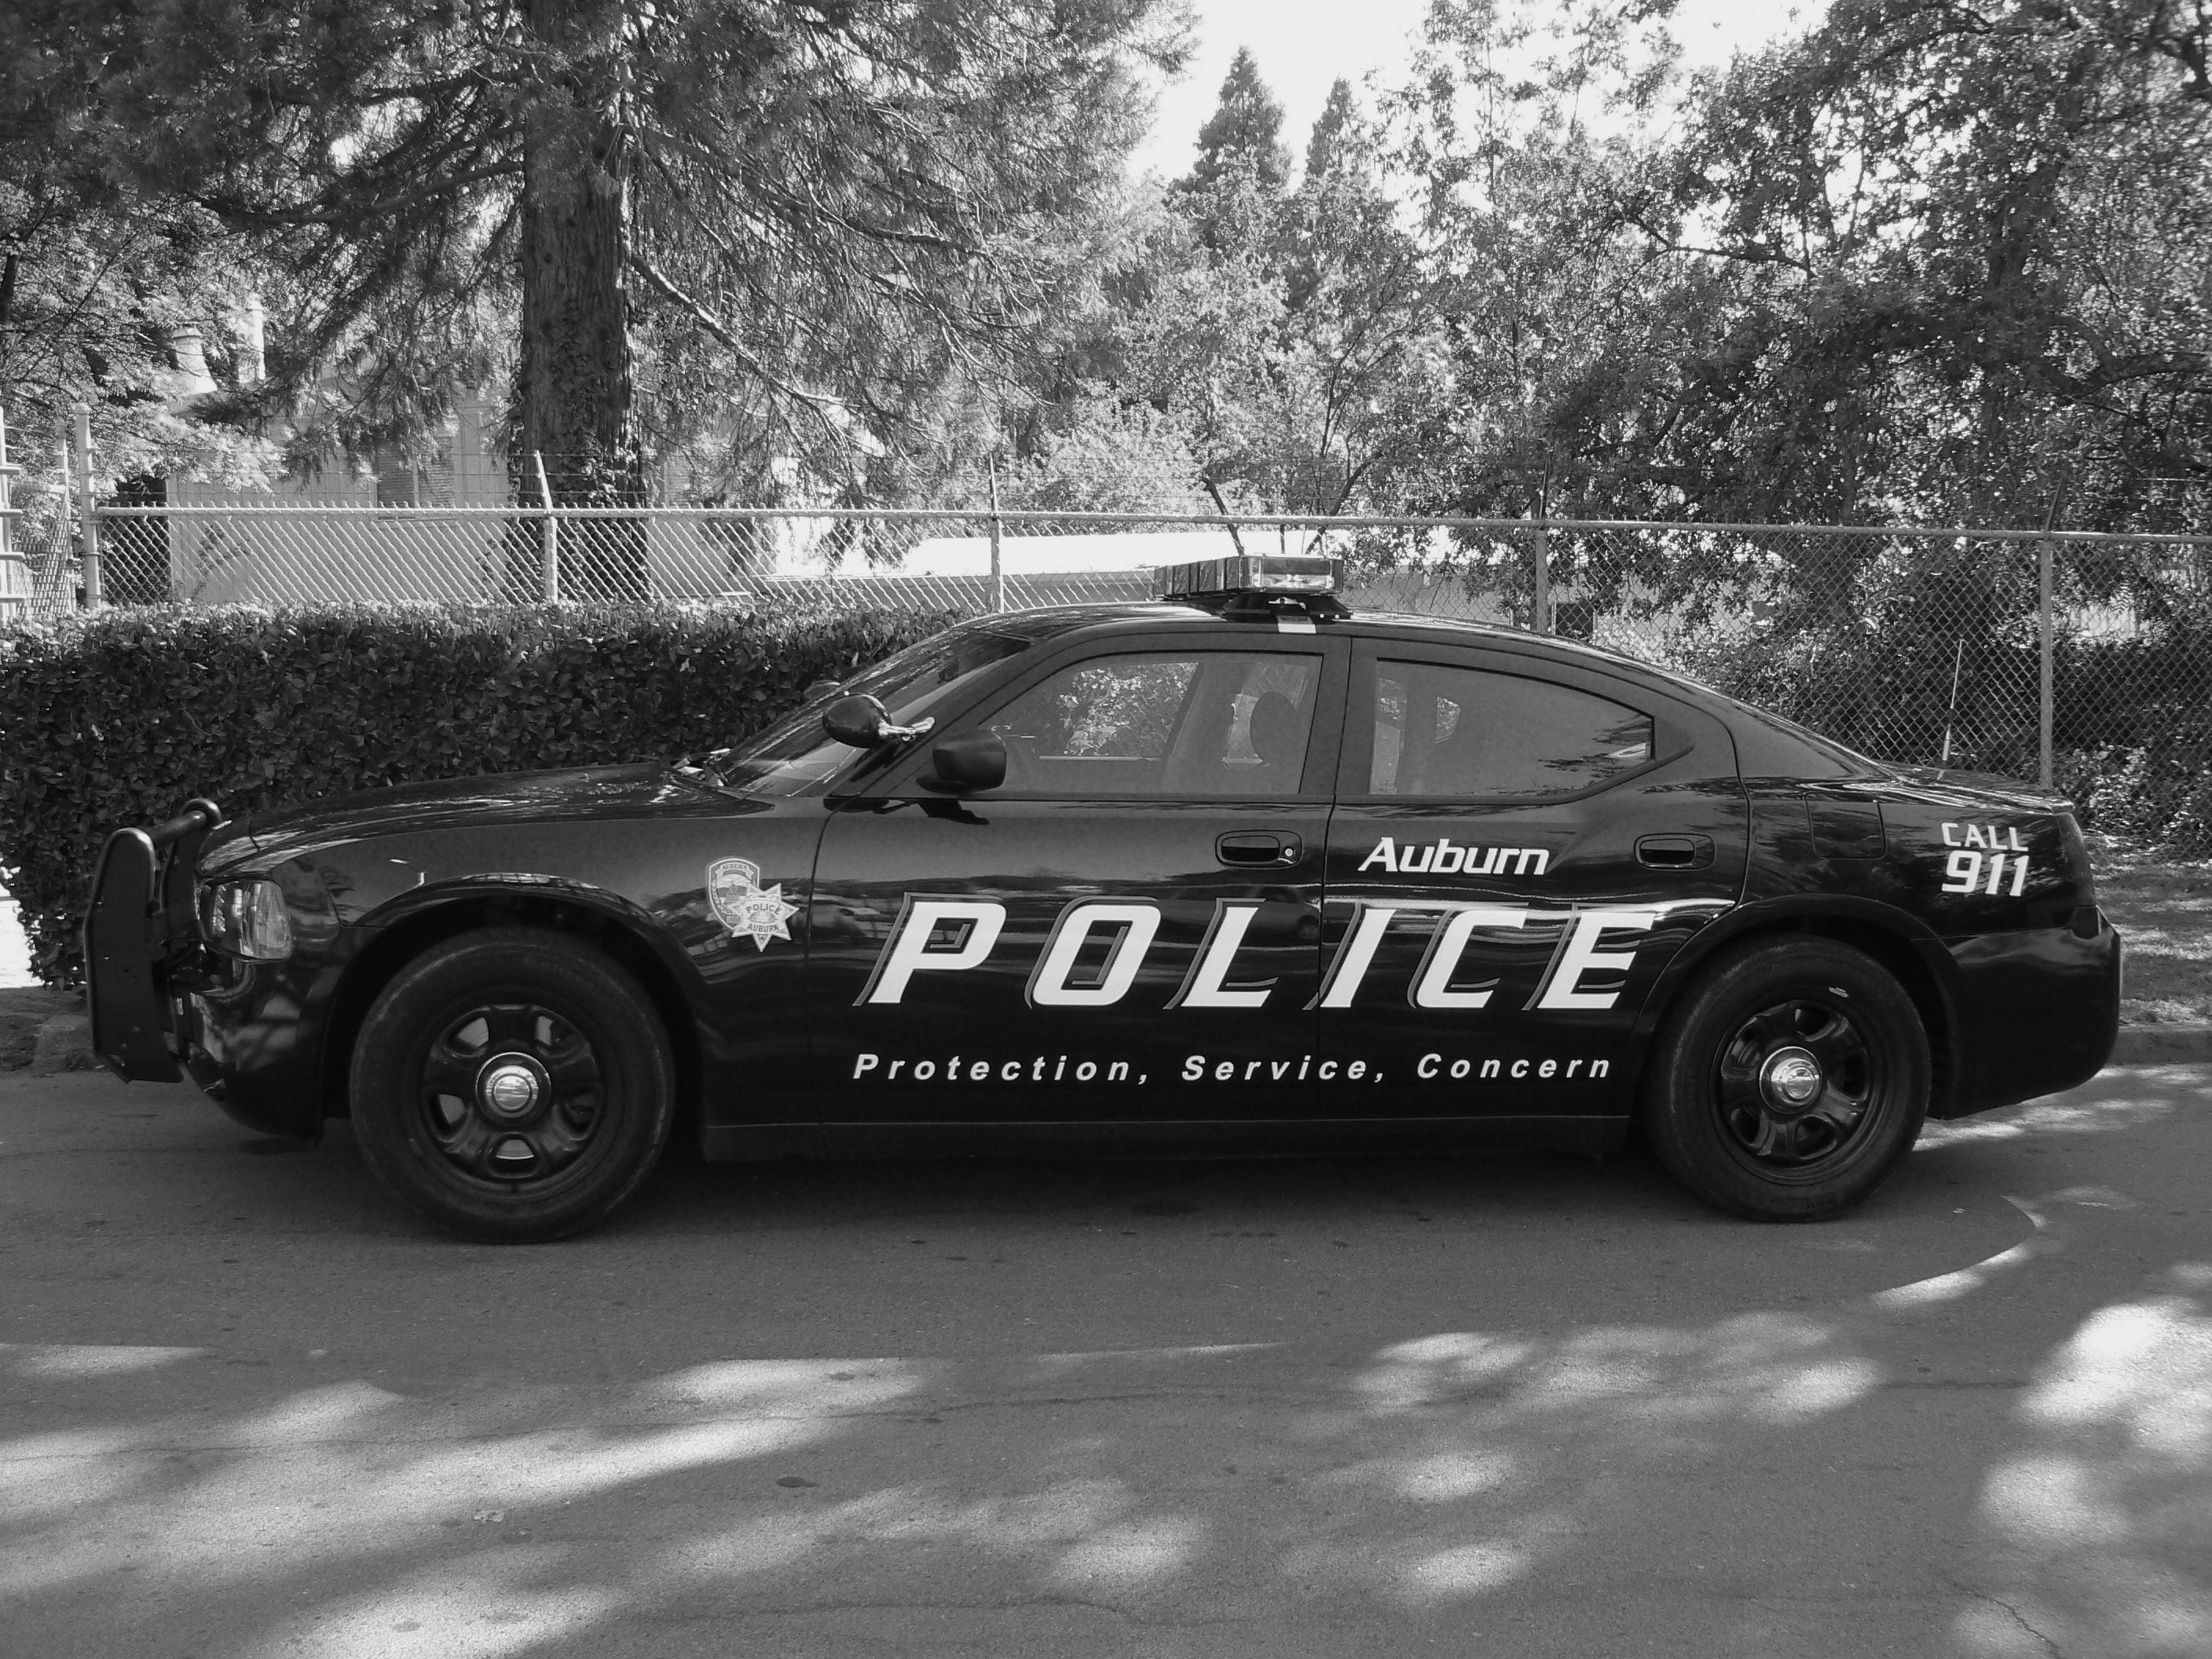 Sexy black and white police car picture aunty